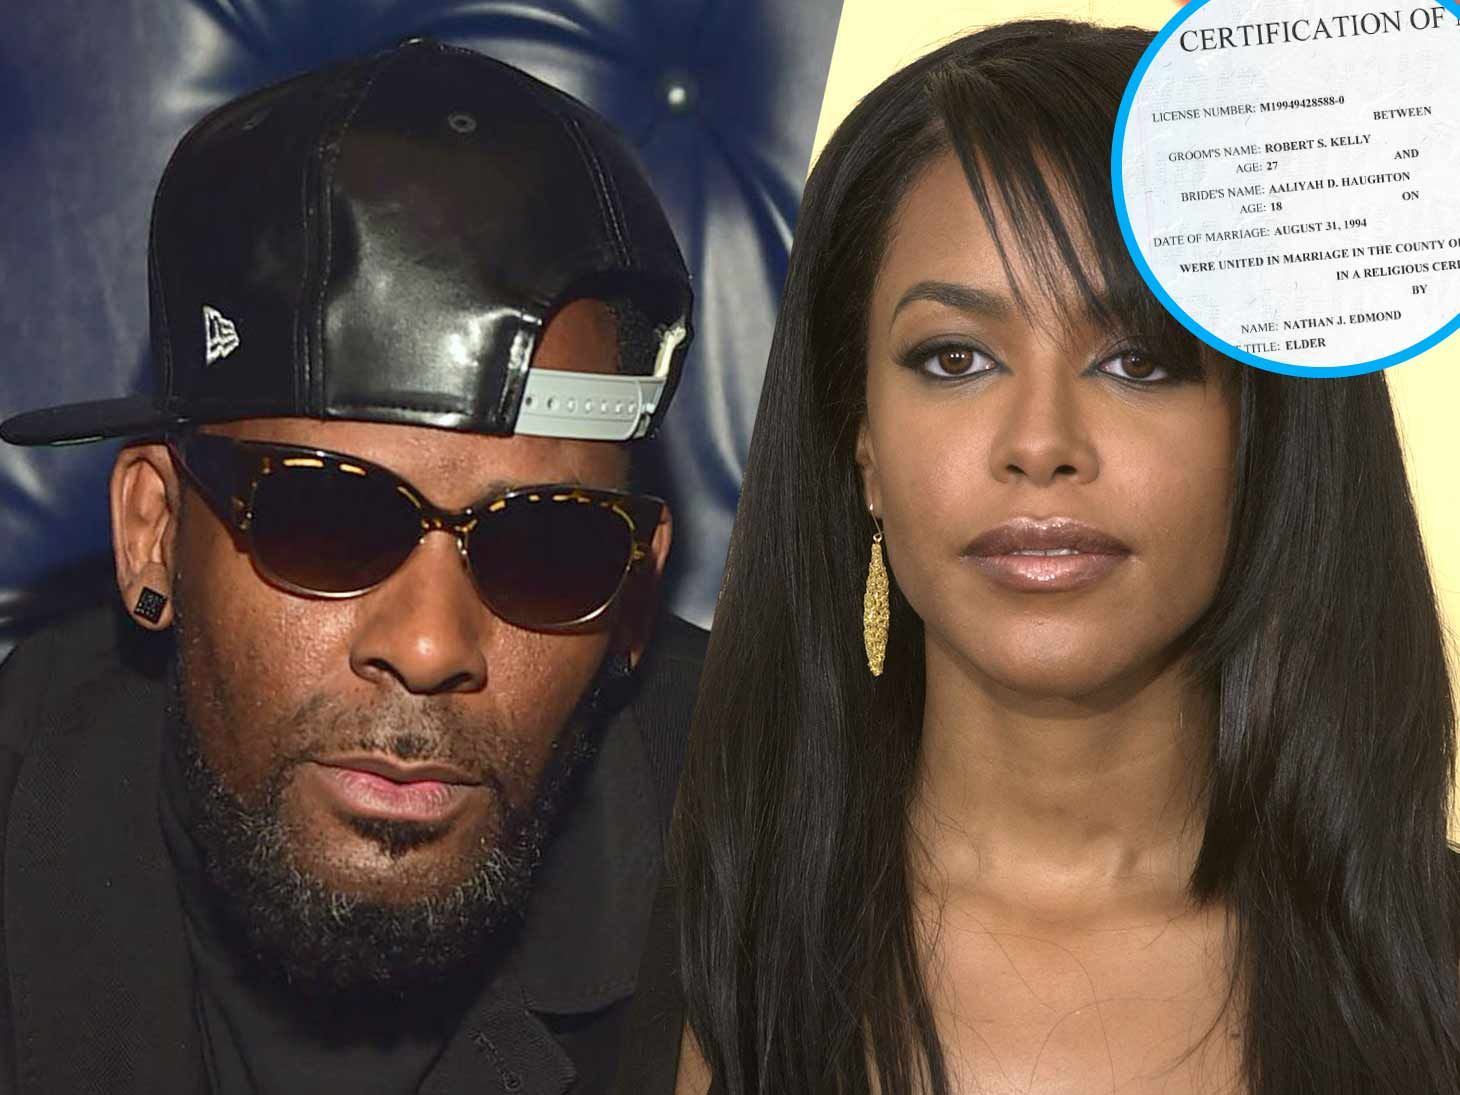 R kelly and aaliyah relationship